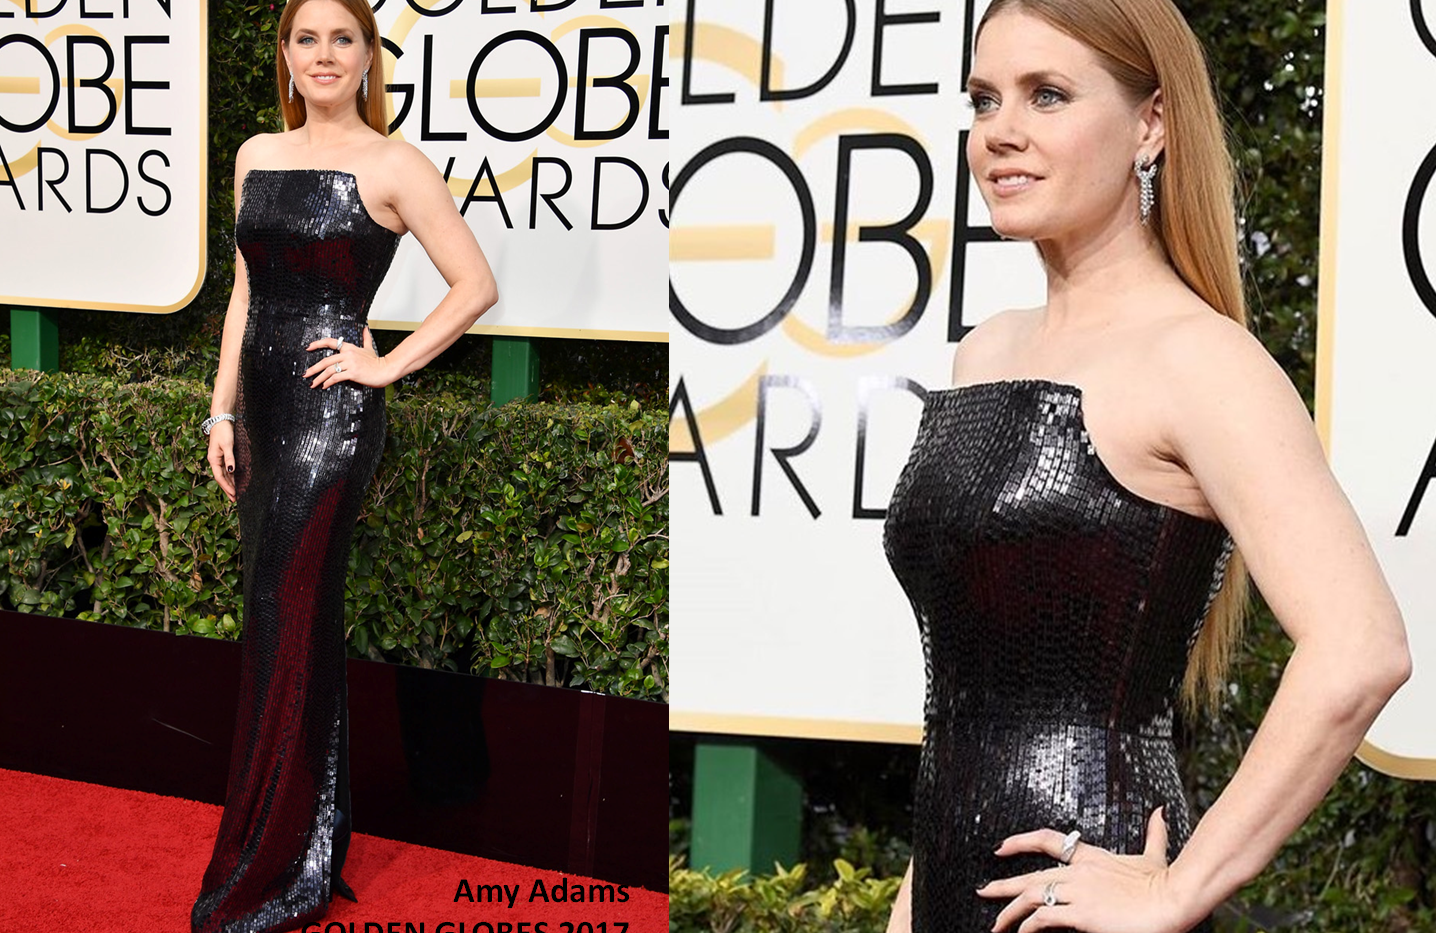 Amy Adams at Golden Globes 2015 wearing black  gown - Project for TOM FORD - pattern making - dressmaking - fitting / tailoring - managing - garment technology consult